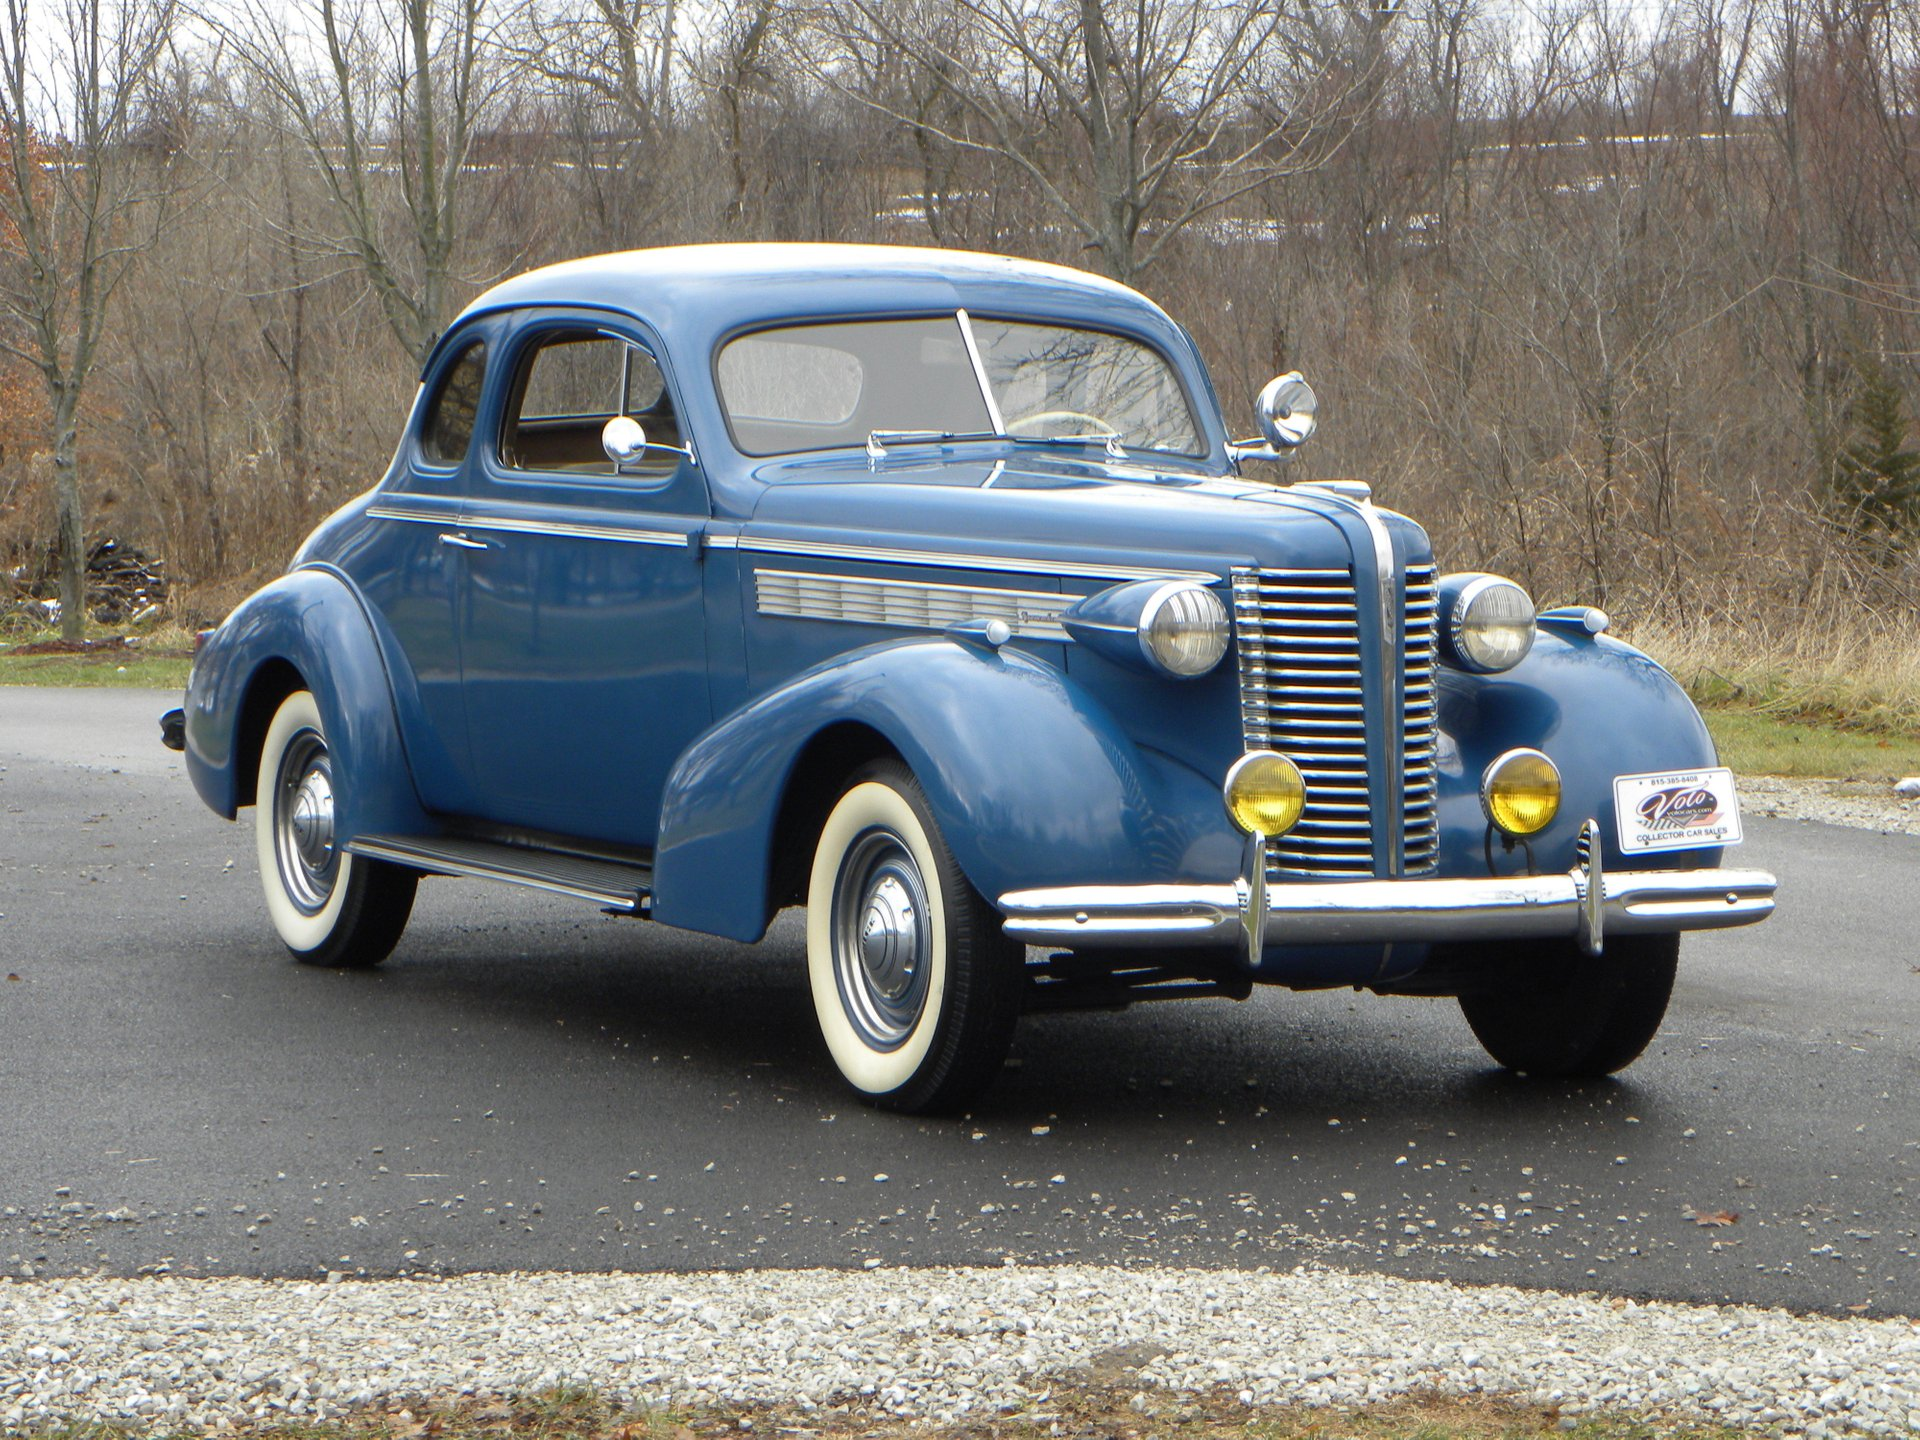 1938 buick special series 40 business coupe